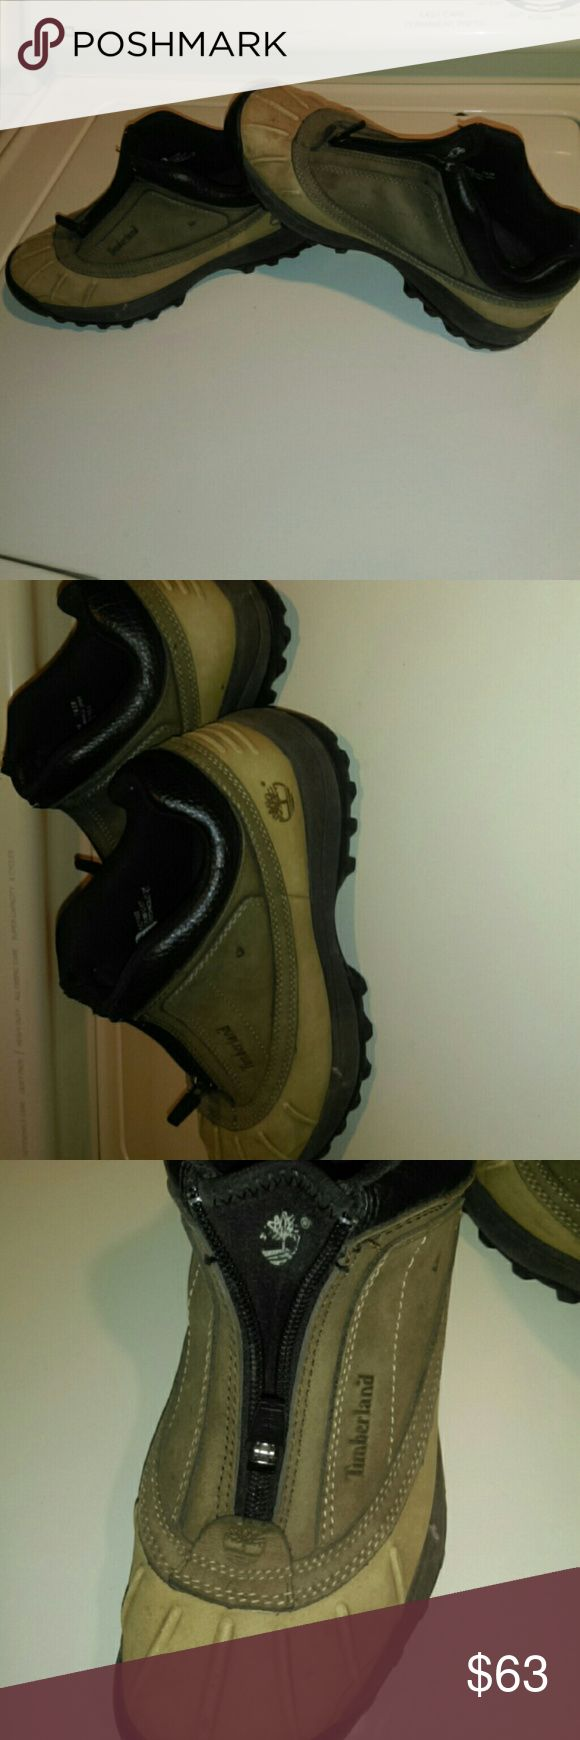 Timberland Duck Boots Used...some soiled spots...ask for addtl pics...no TRADES please...true 6 to 6.5....I wear 6.5-7 n I can wear them with sweatsocks. Timberland Shoes Winter & Rain Boots